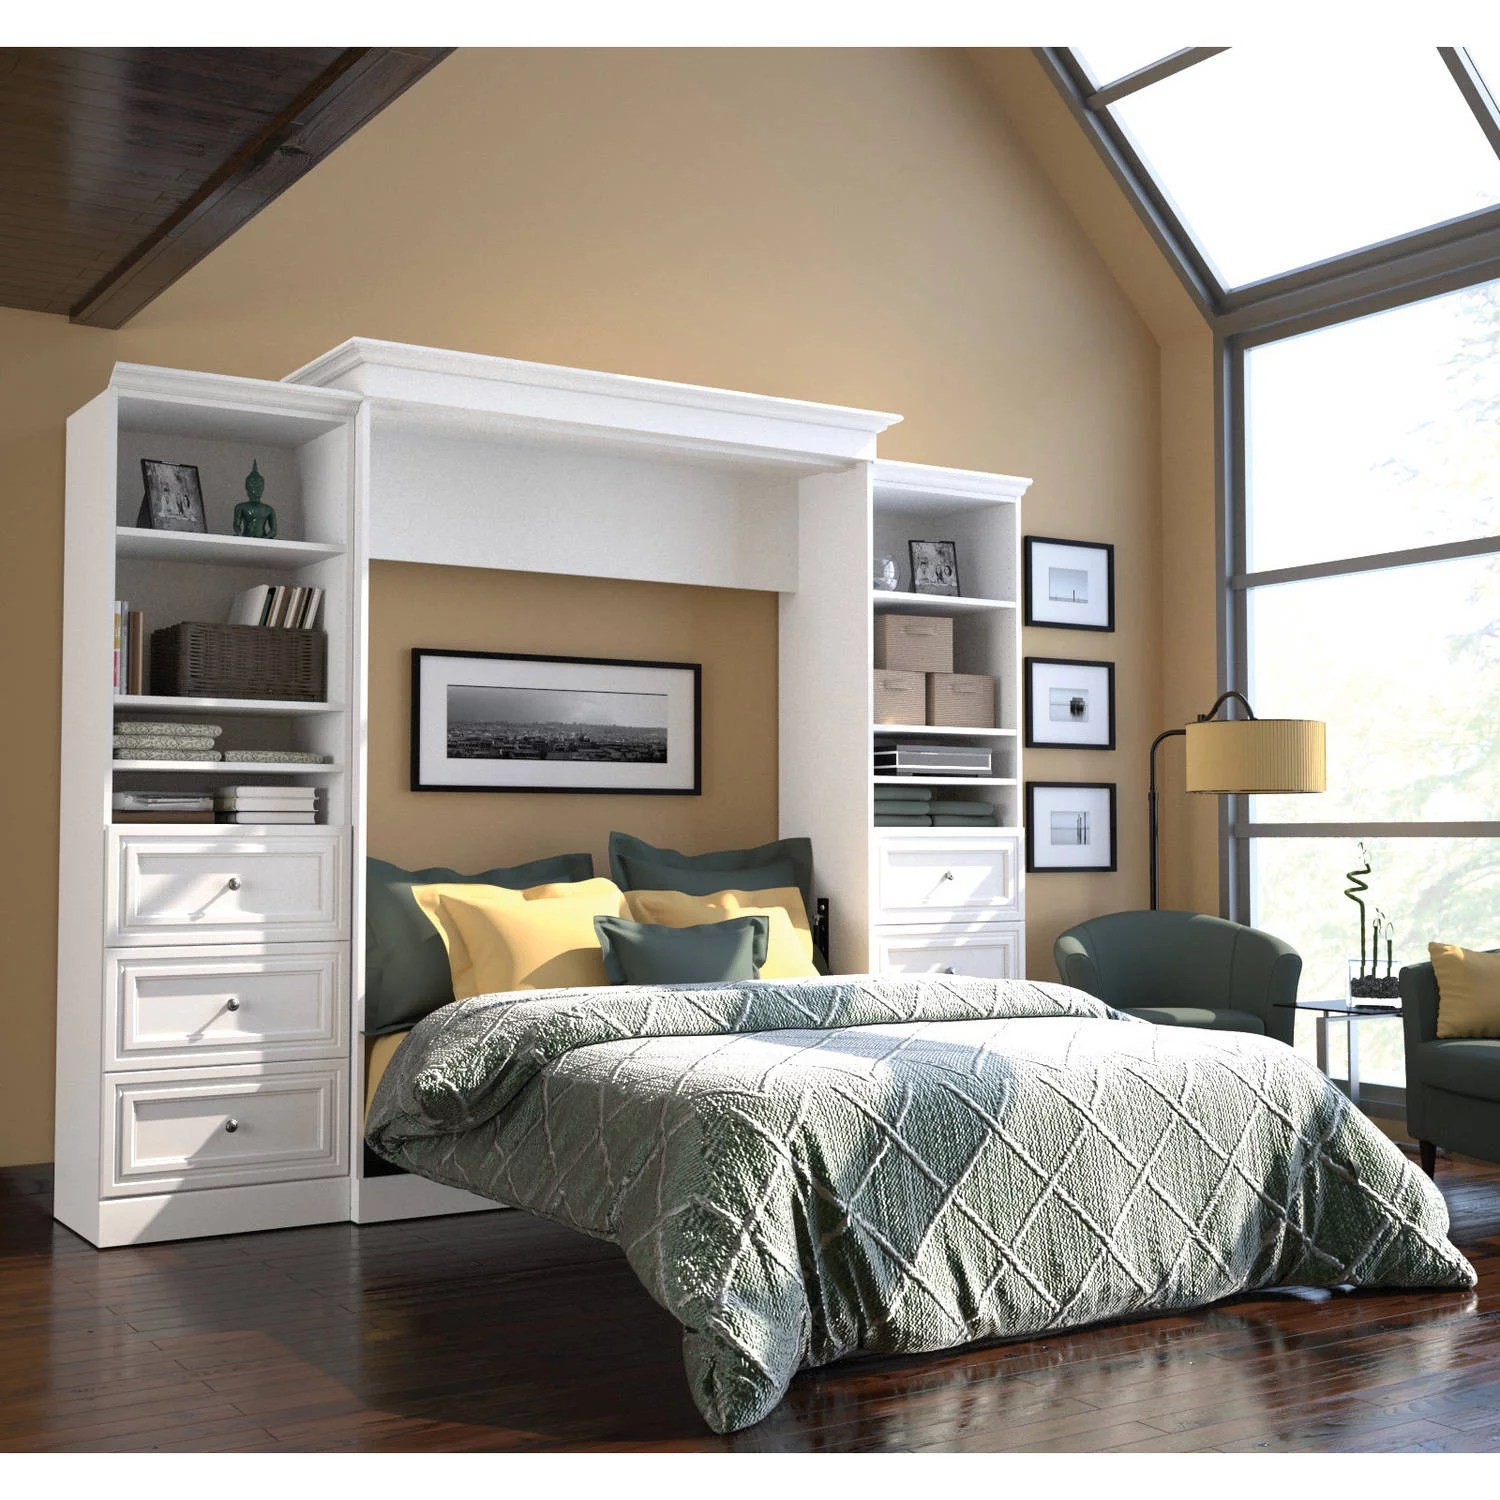 bestar versatile by bestar 115 queen wall bed kit featuring a 3 drawer set in white